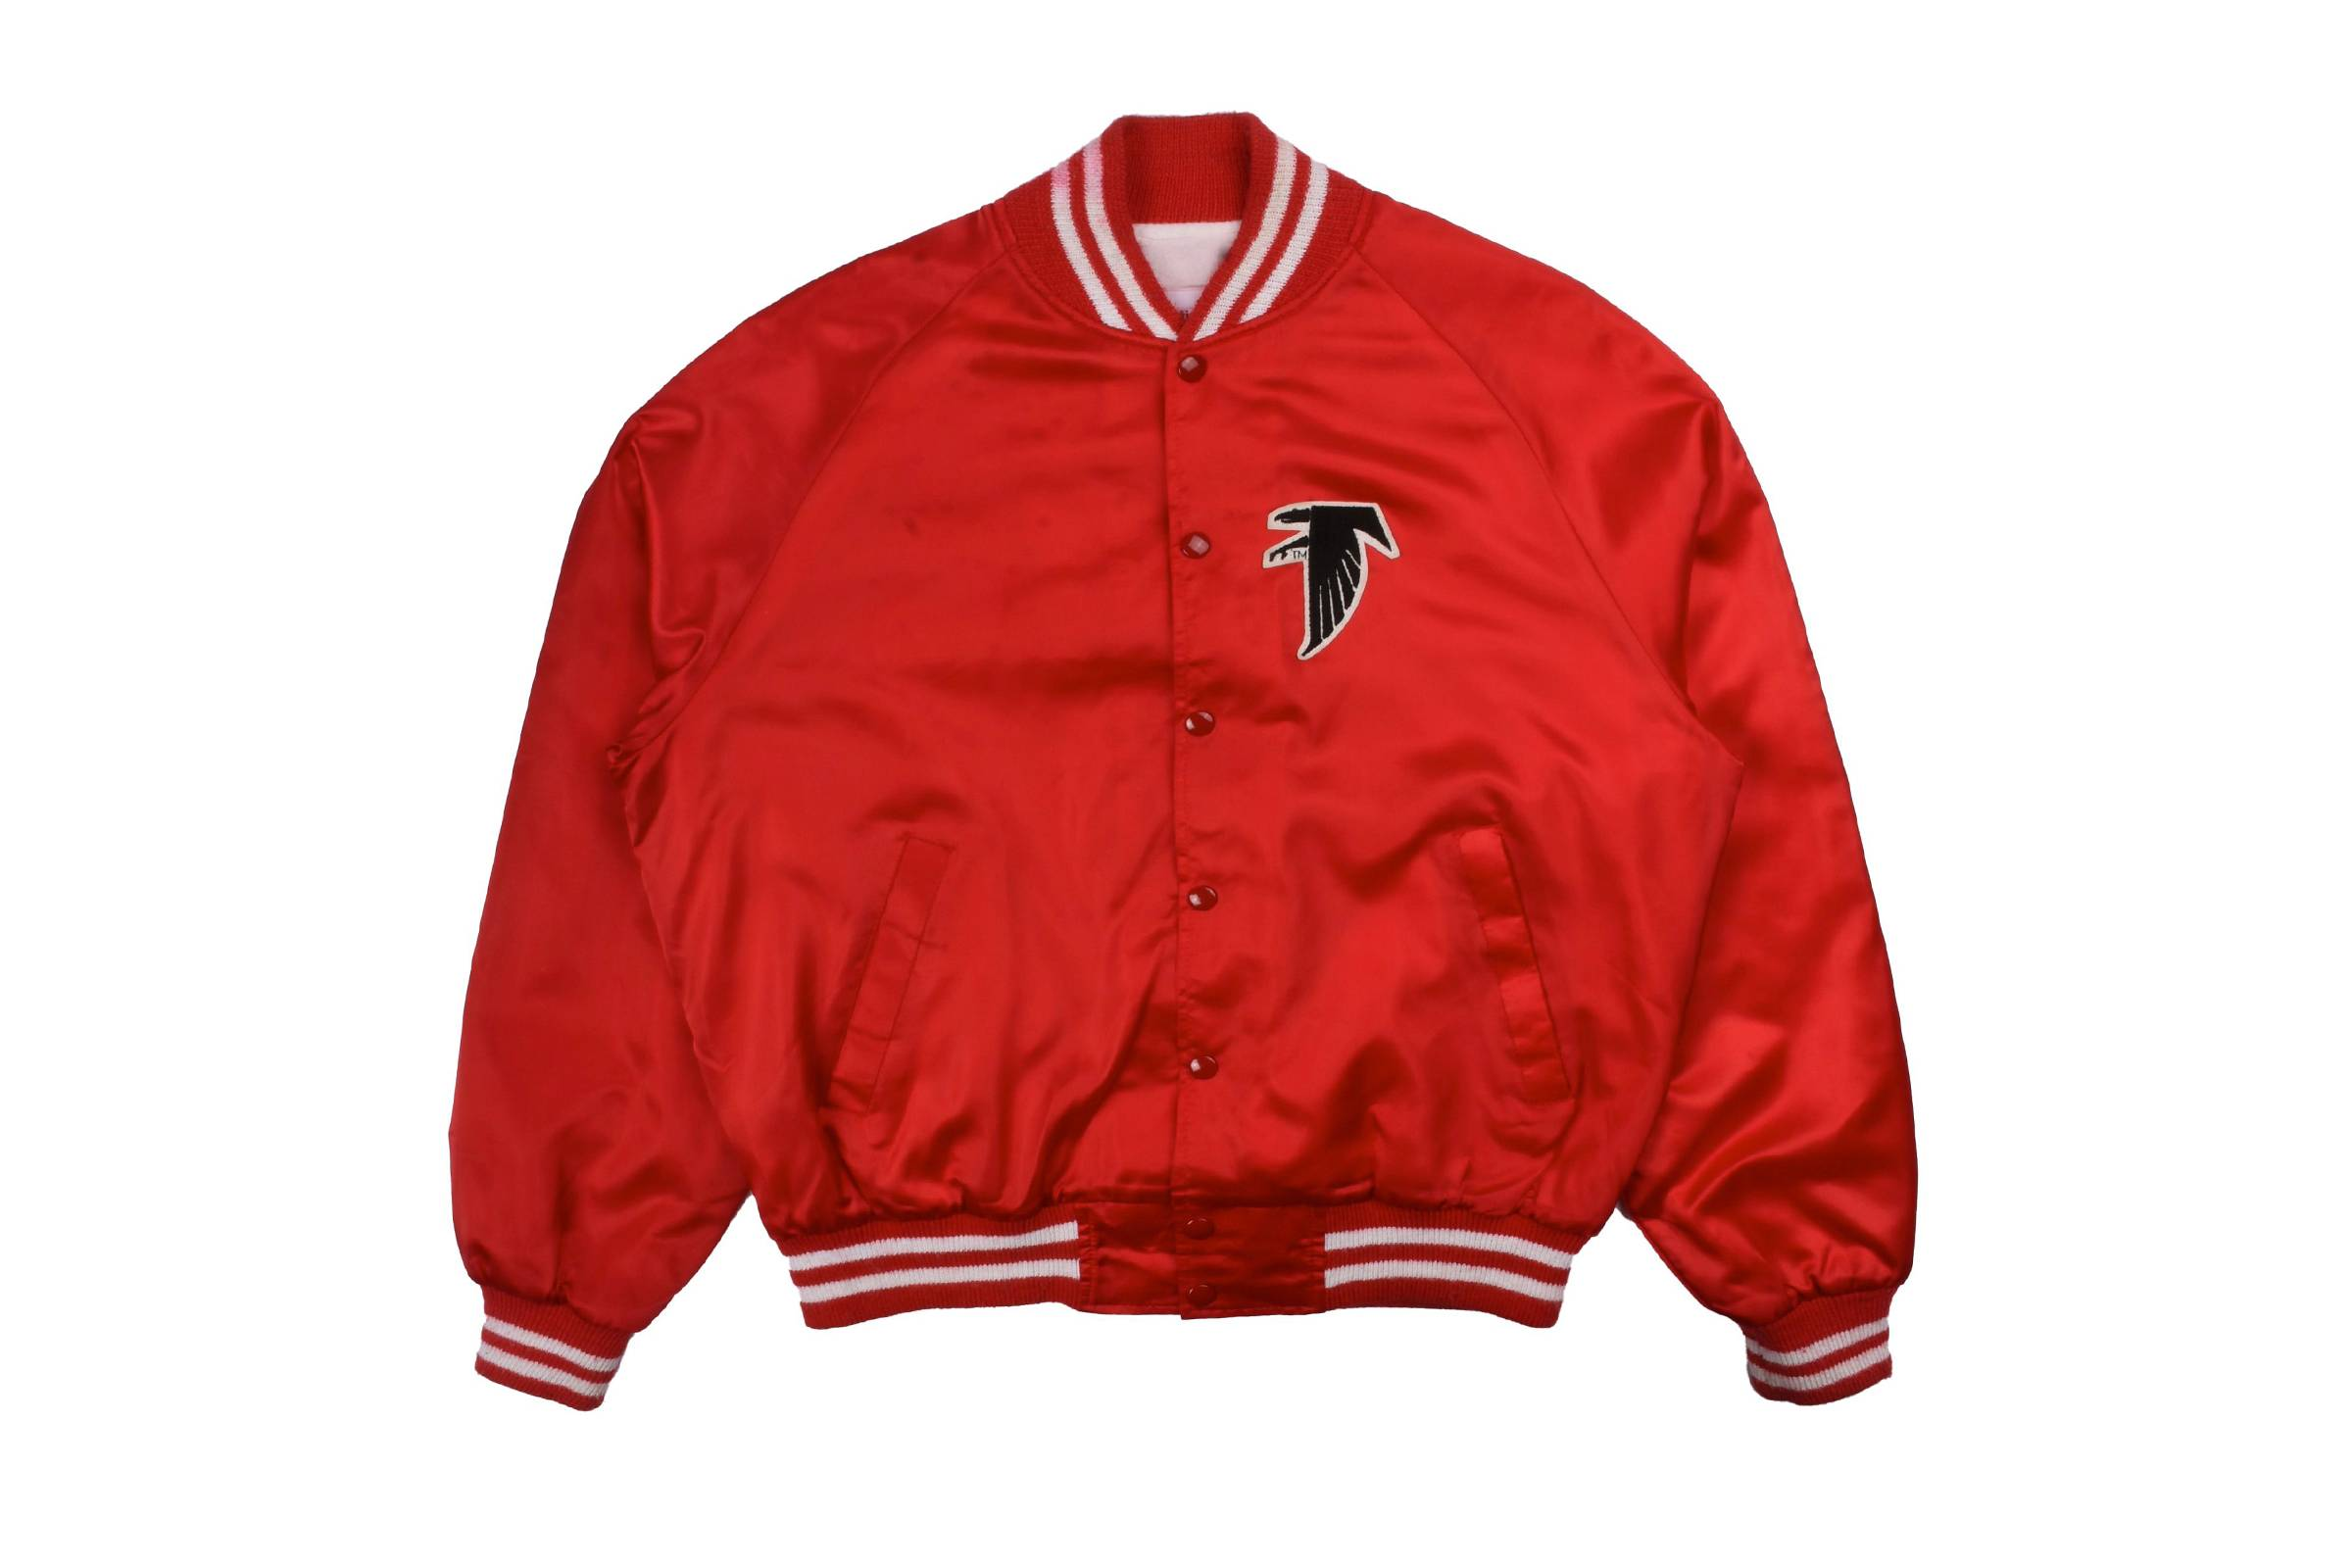 3. Varsity Jacket Collection